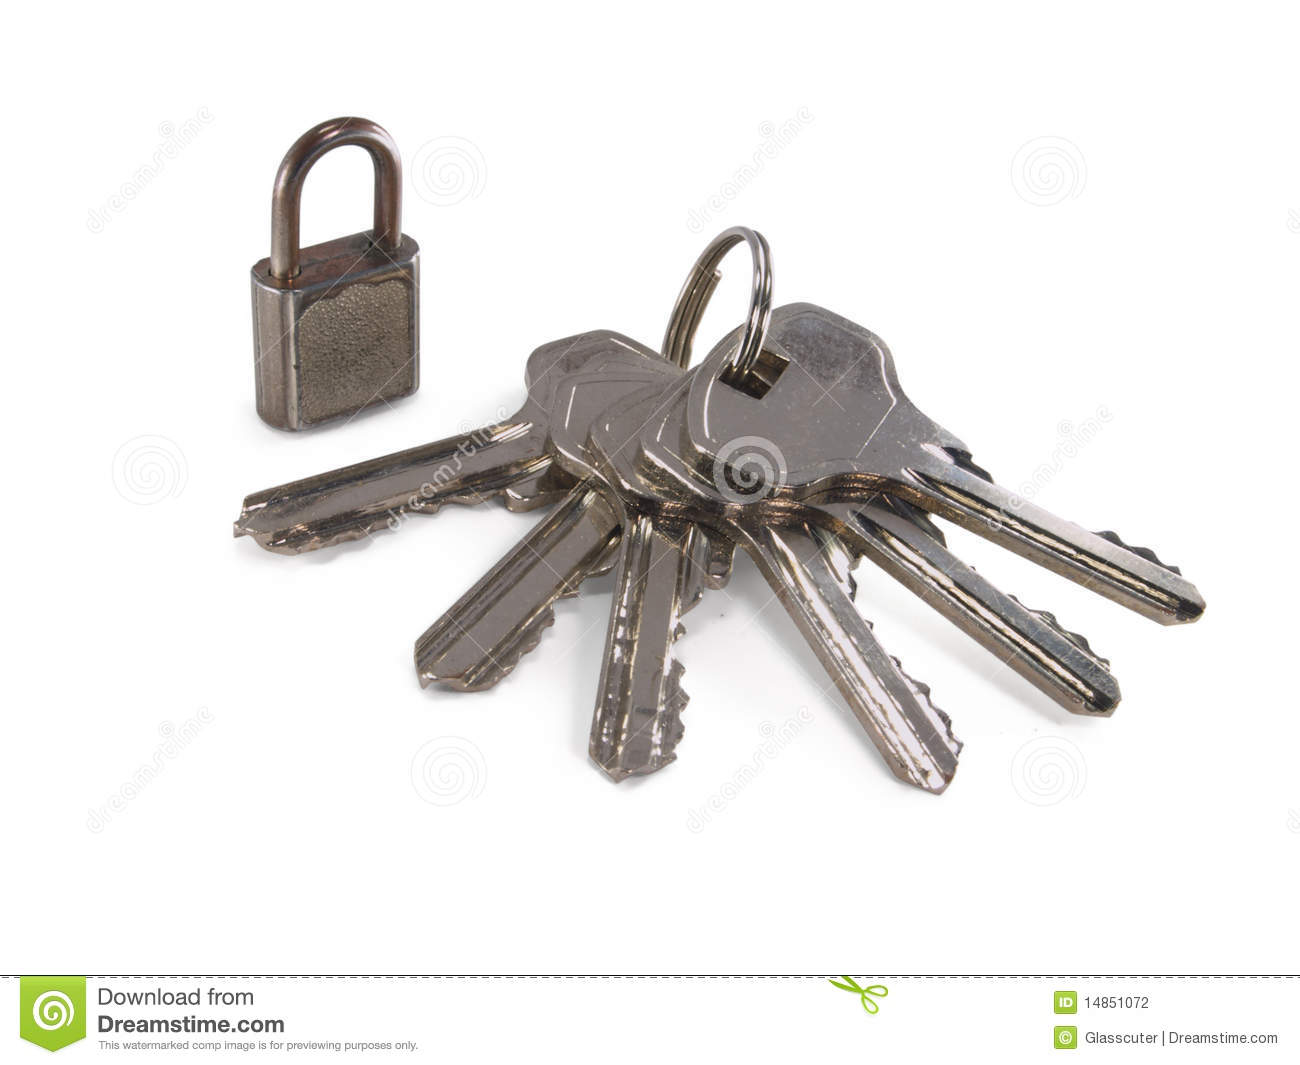 Padlock and a bunch of a keys.